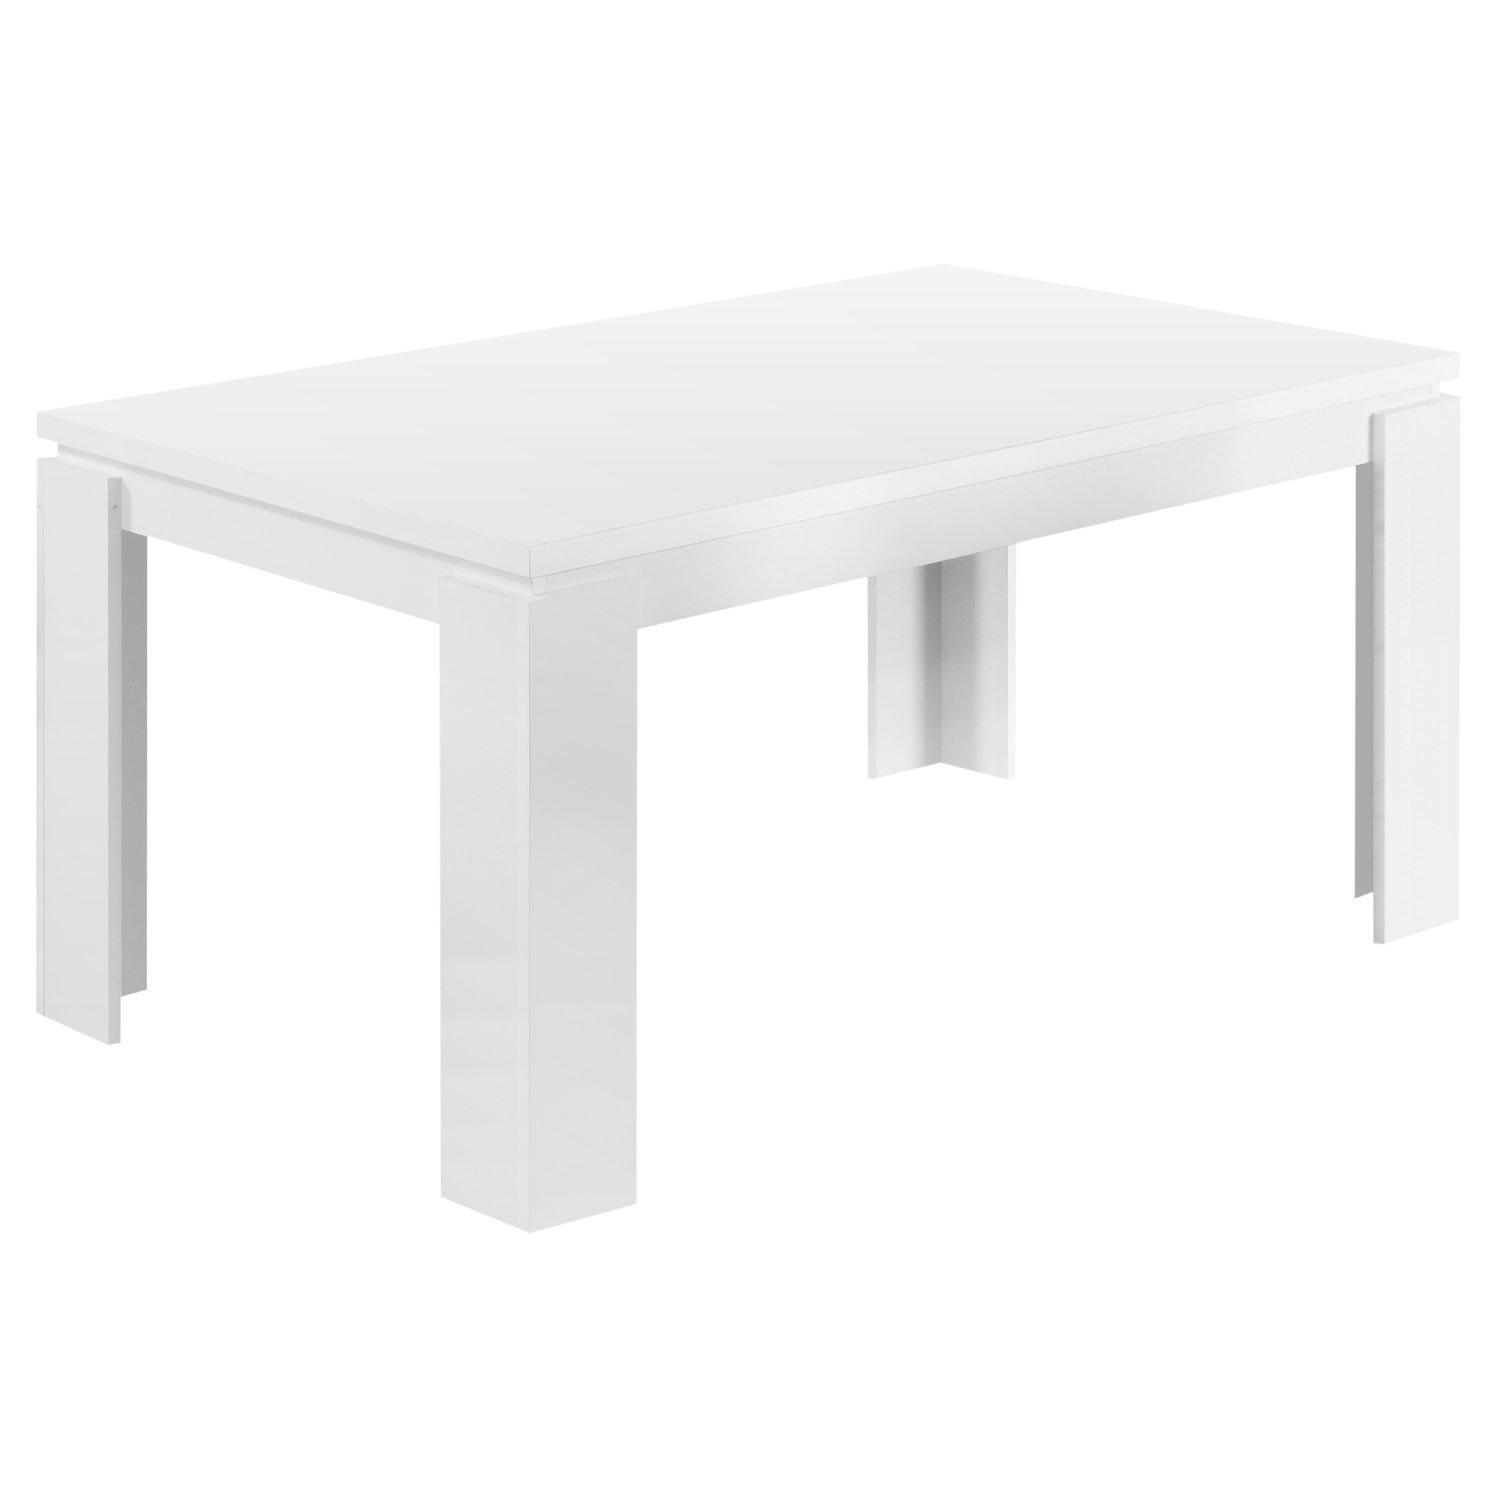 Dining Table 36 X 60 White Rd Furniture